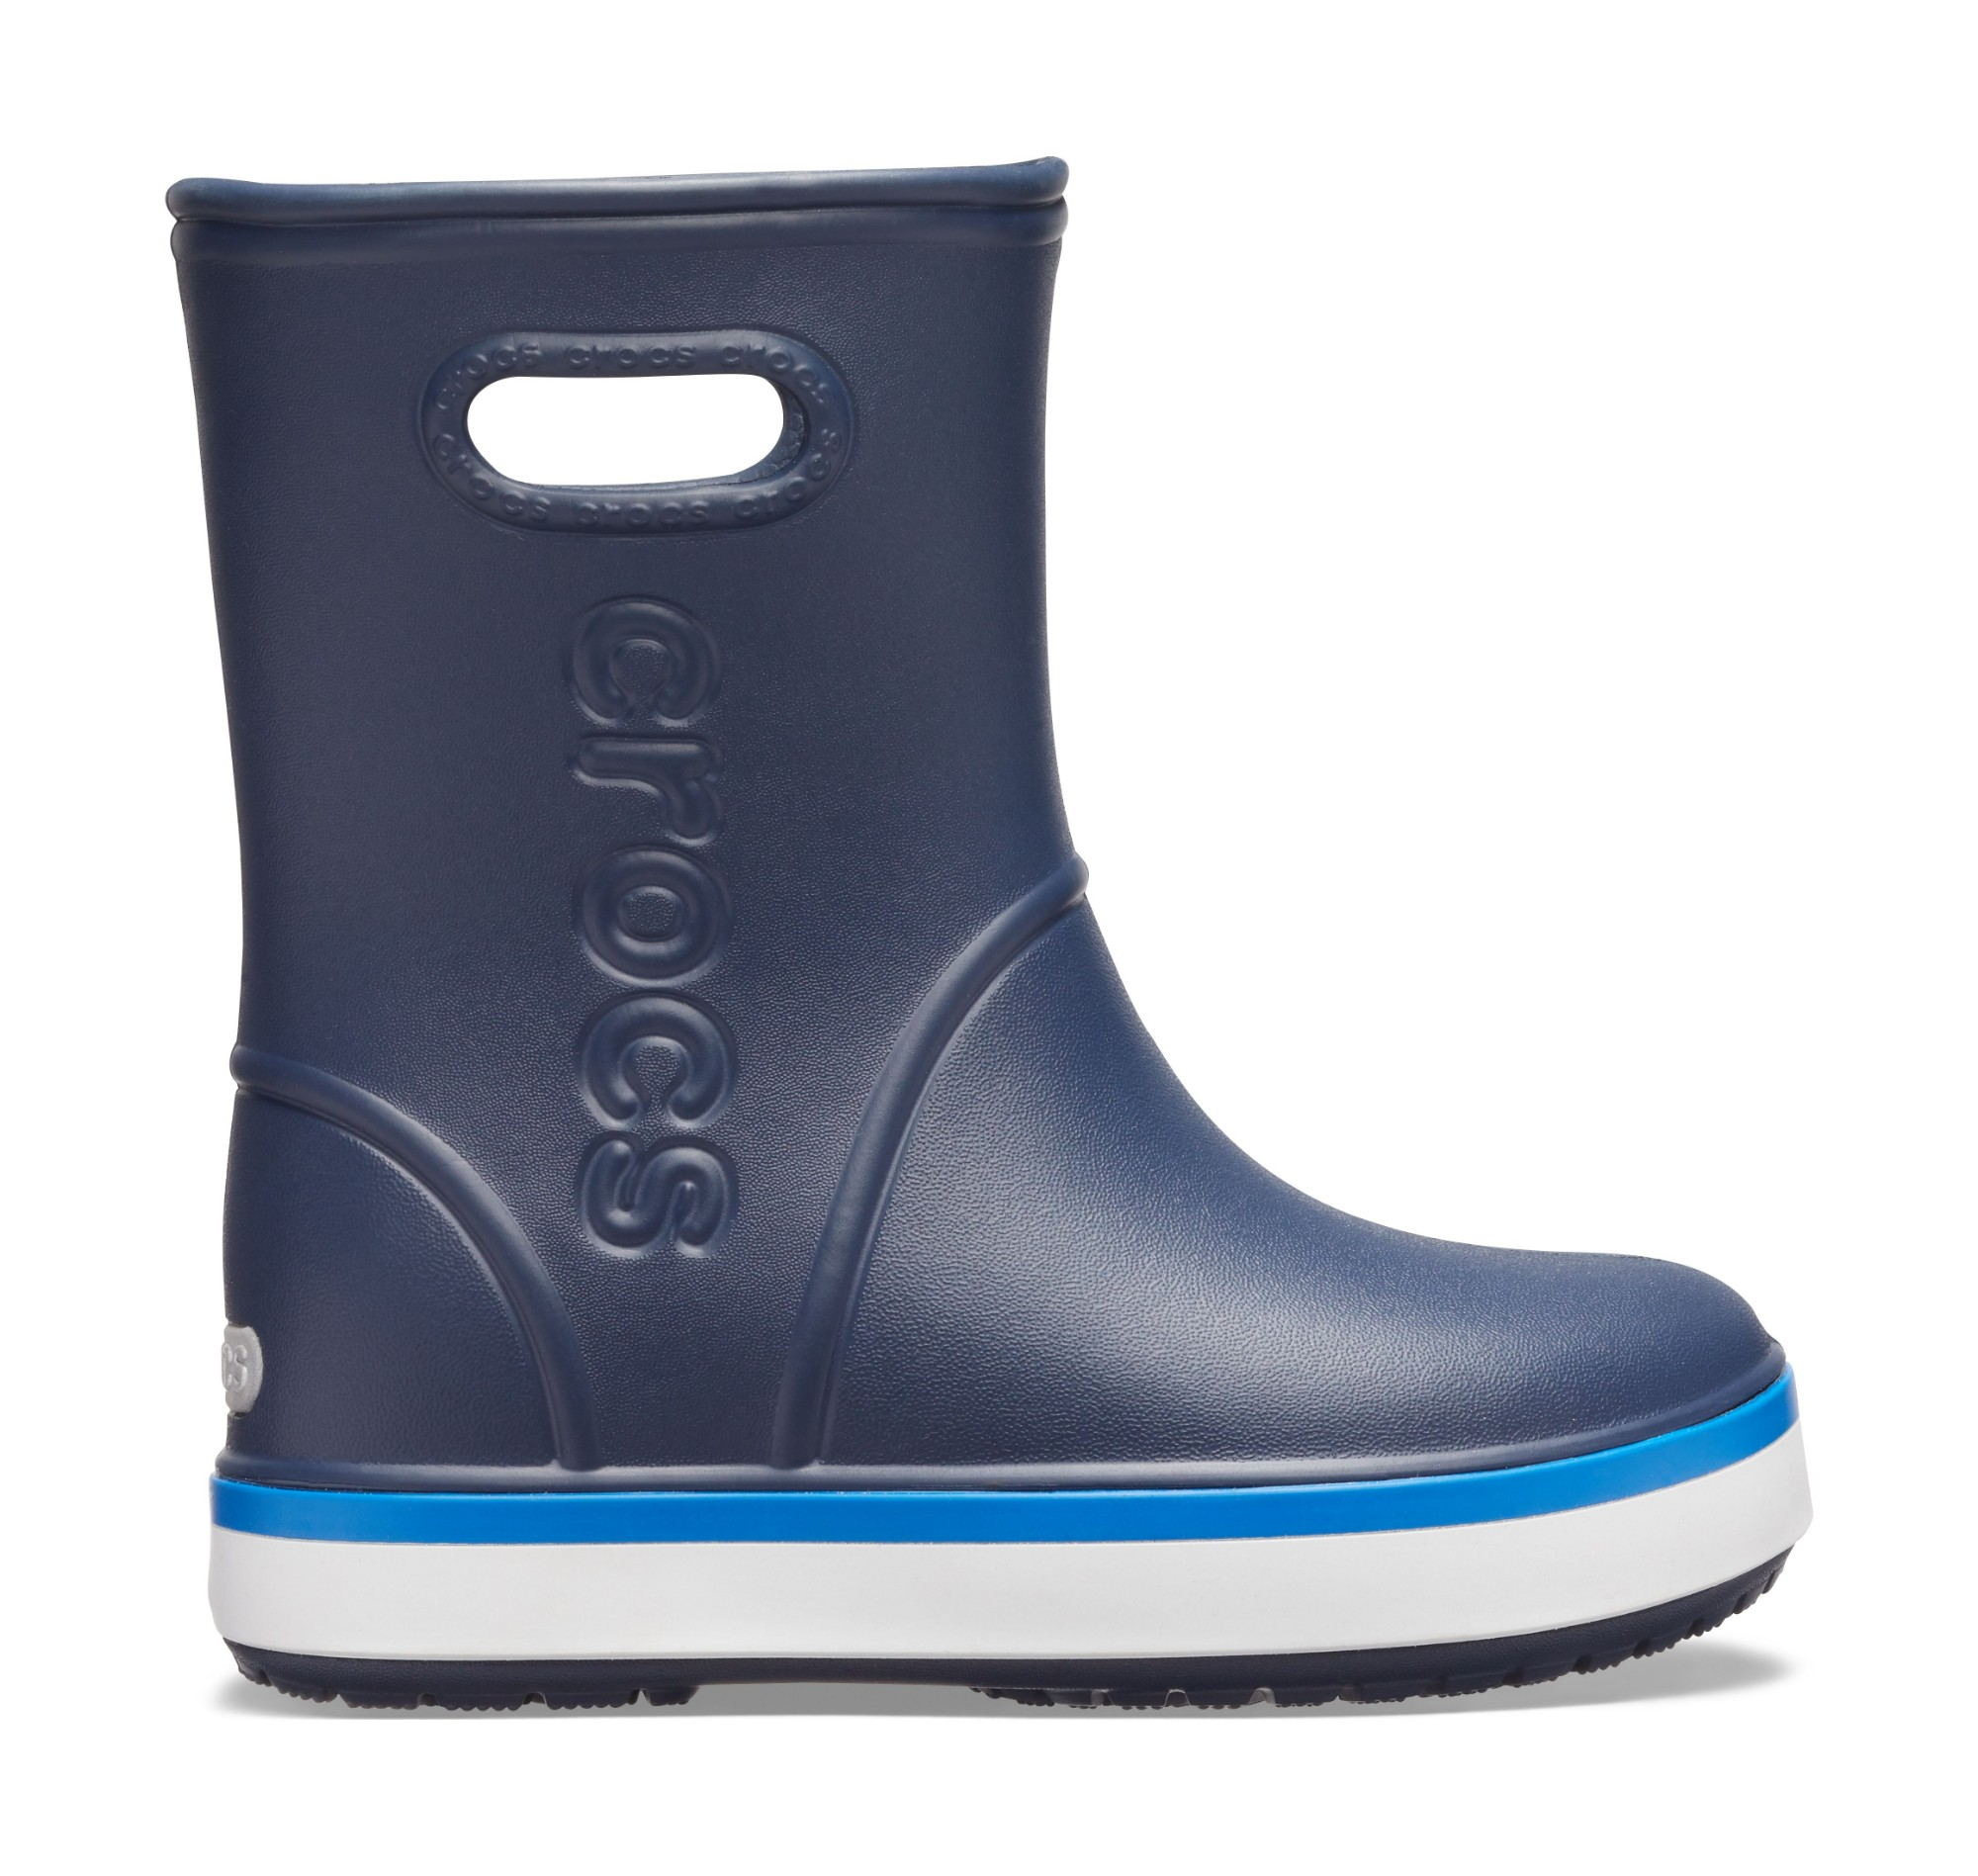 Crocs™ Crocband Rain Boot Kid's Navy/Bright Cobalt 25